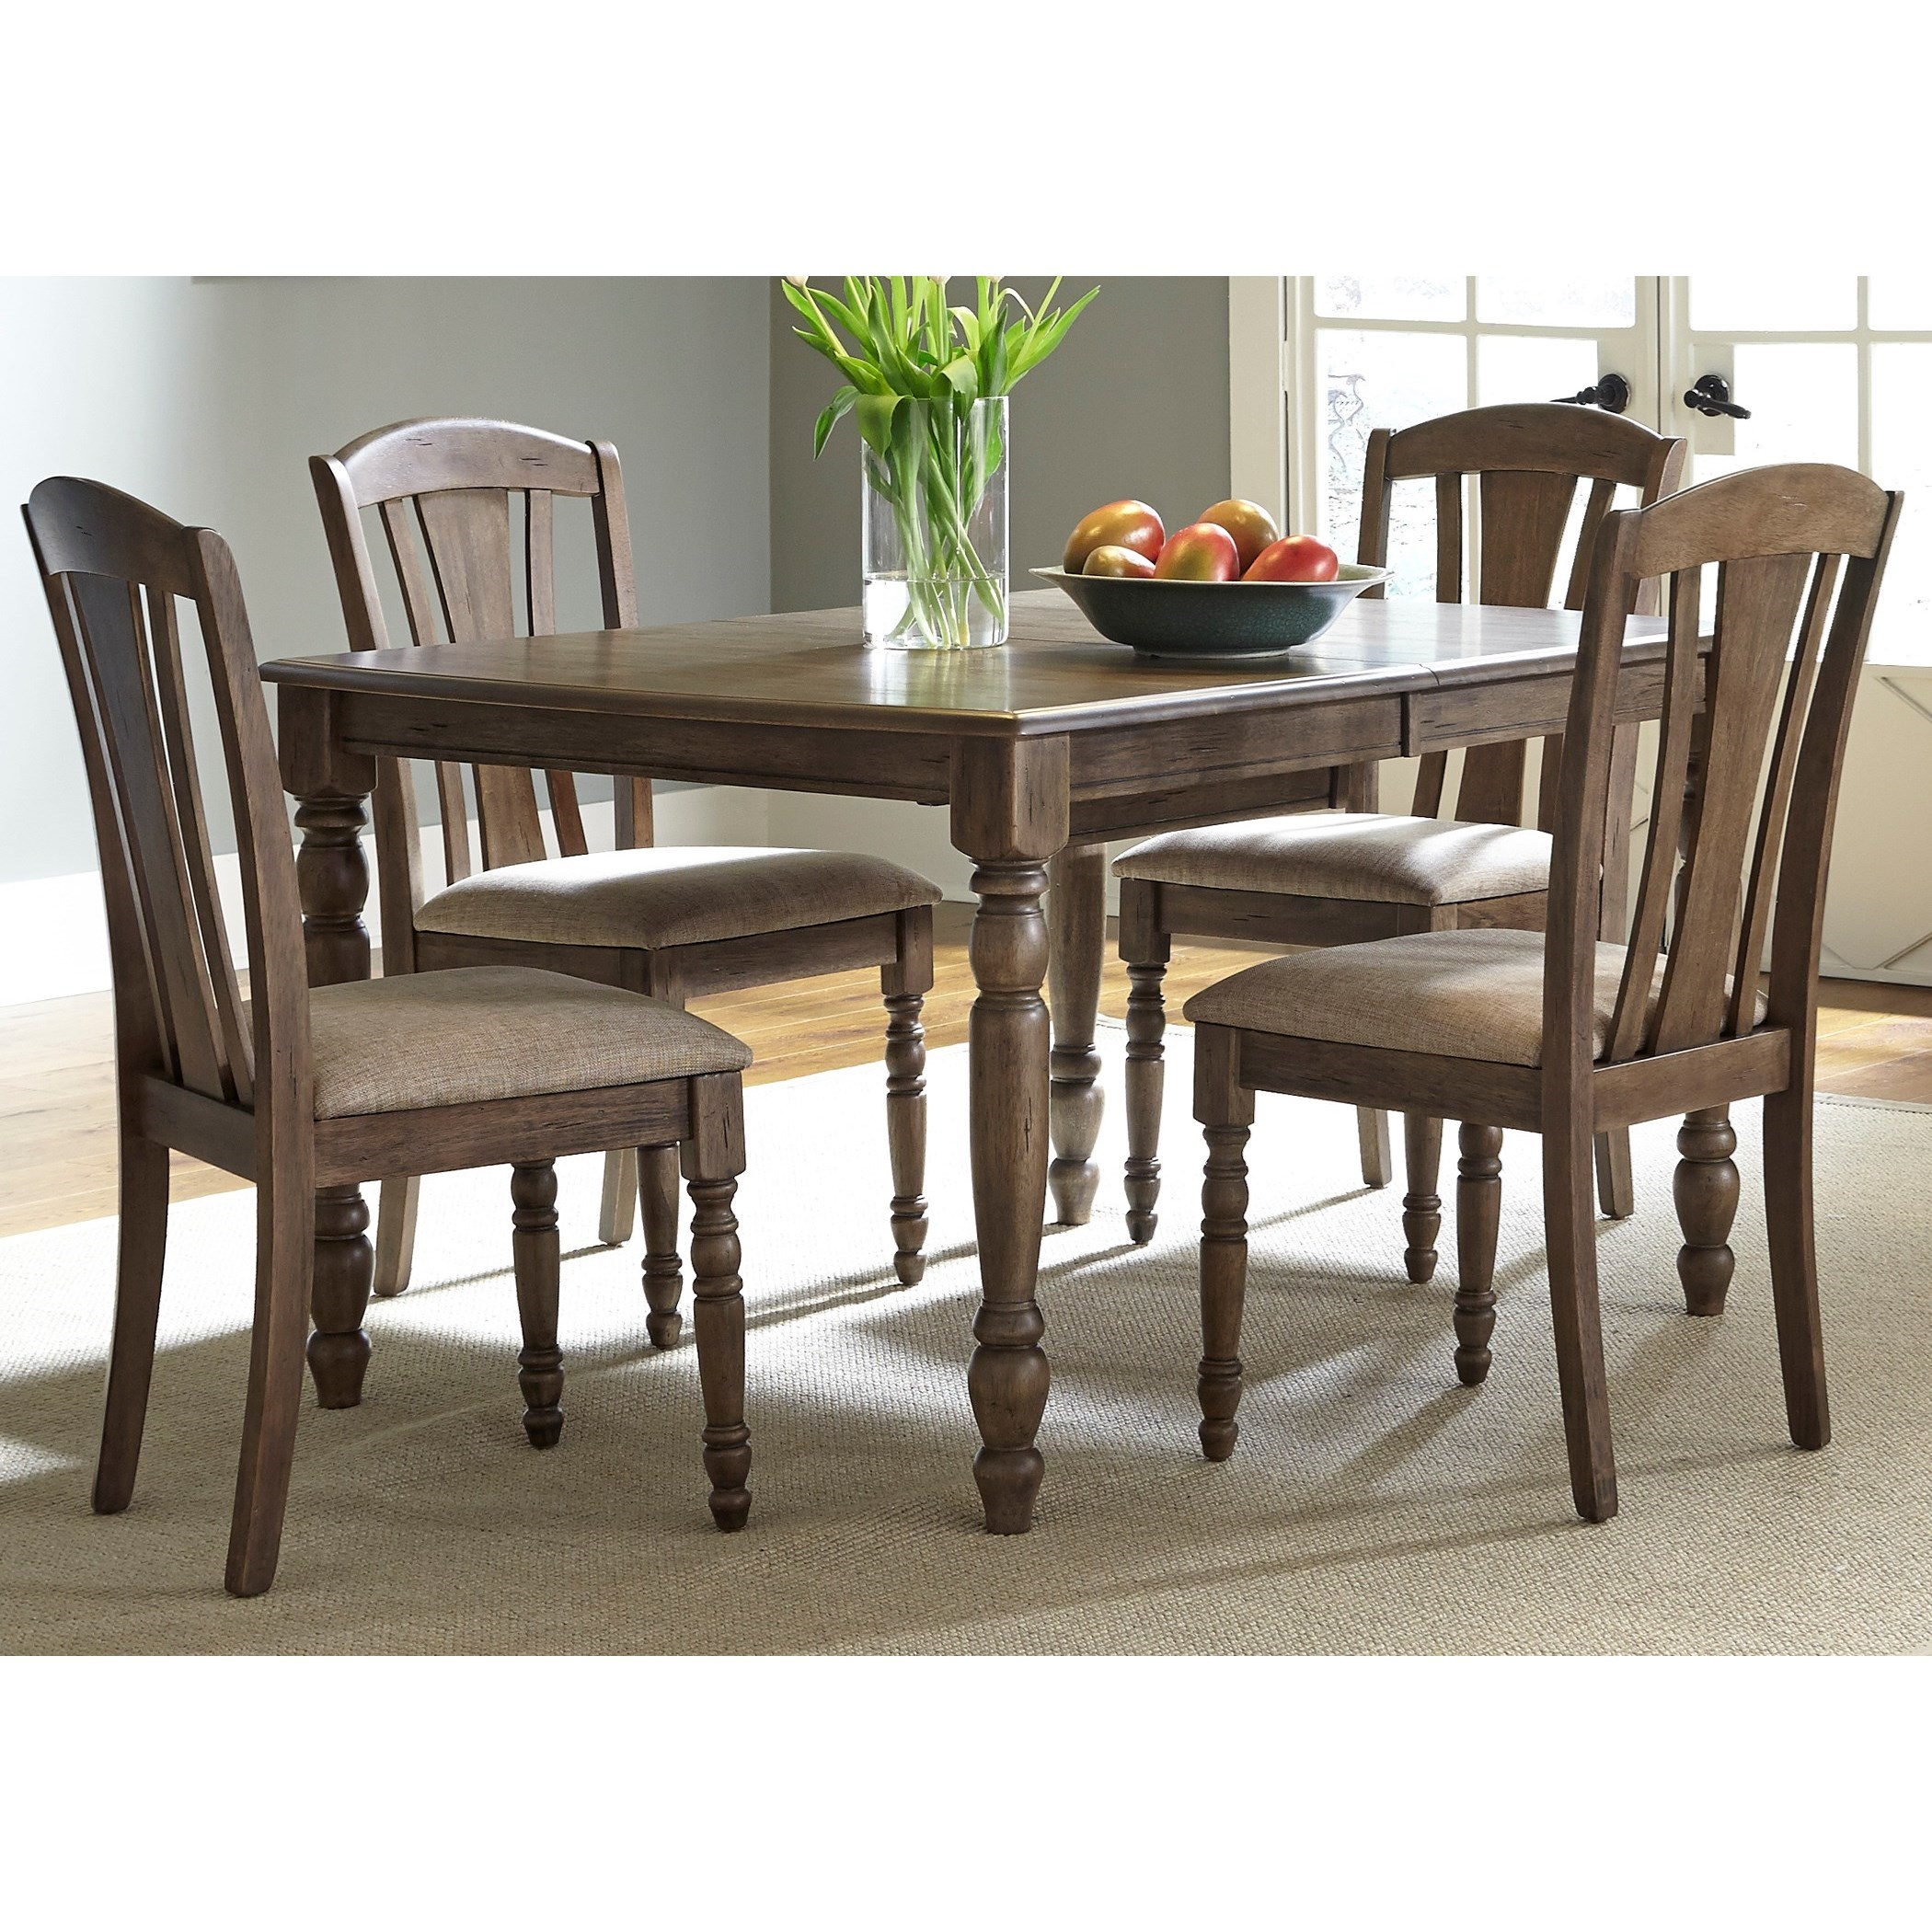 Liberty Furniture Dining Room Sets: Liberty Furniture Candlewood 163-CD-5RLS Casual 5 Piece